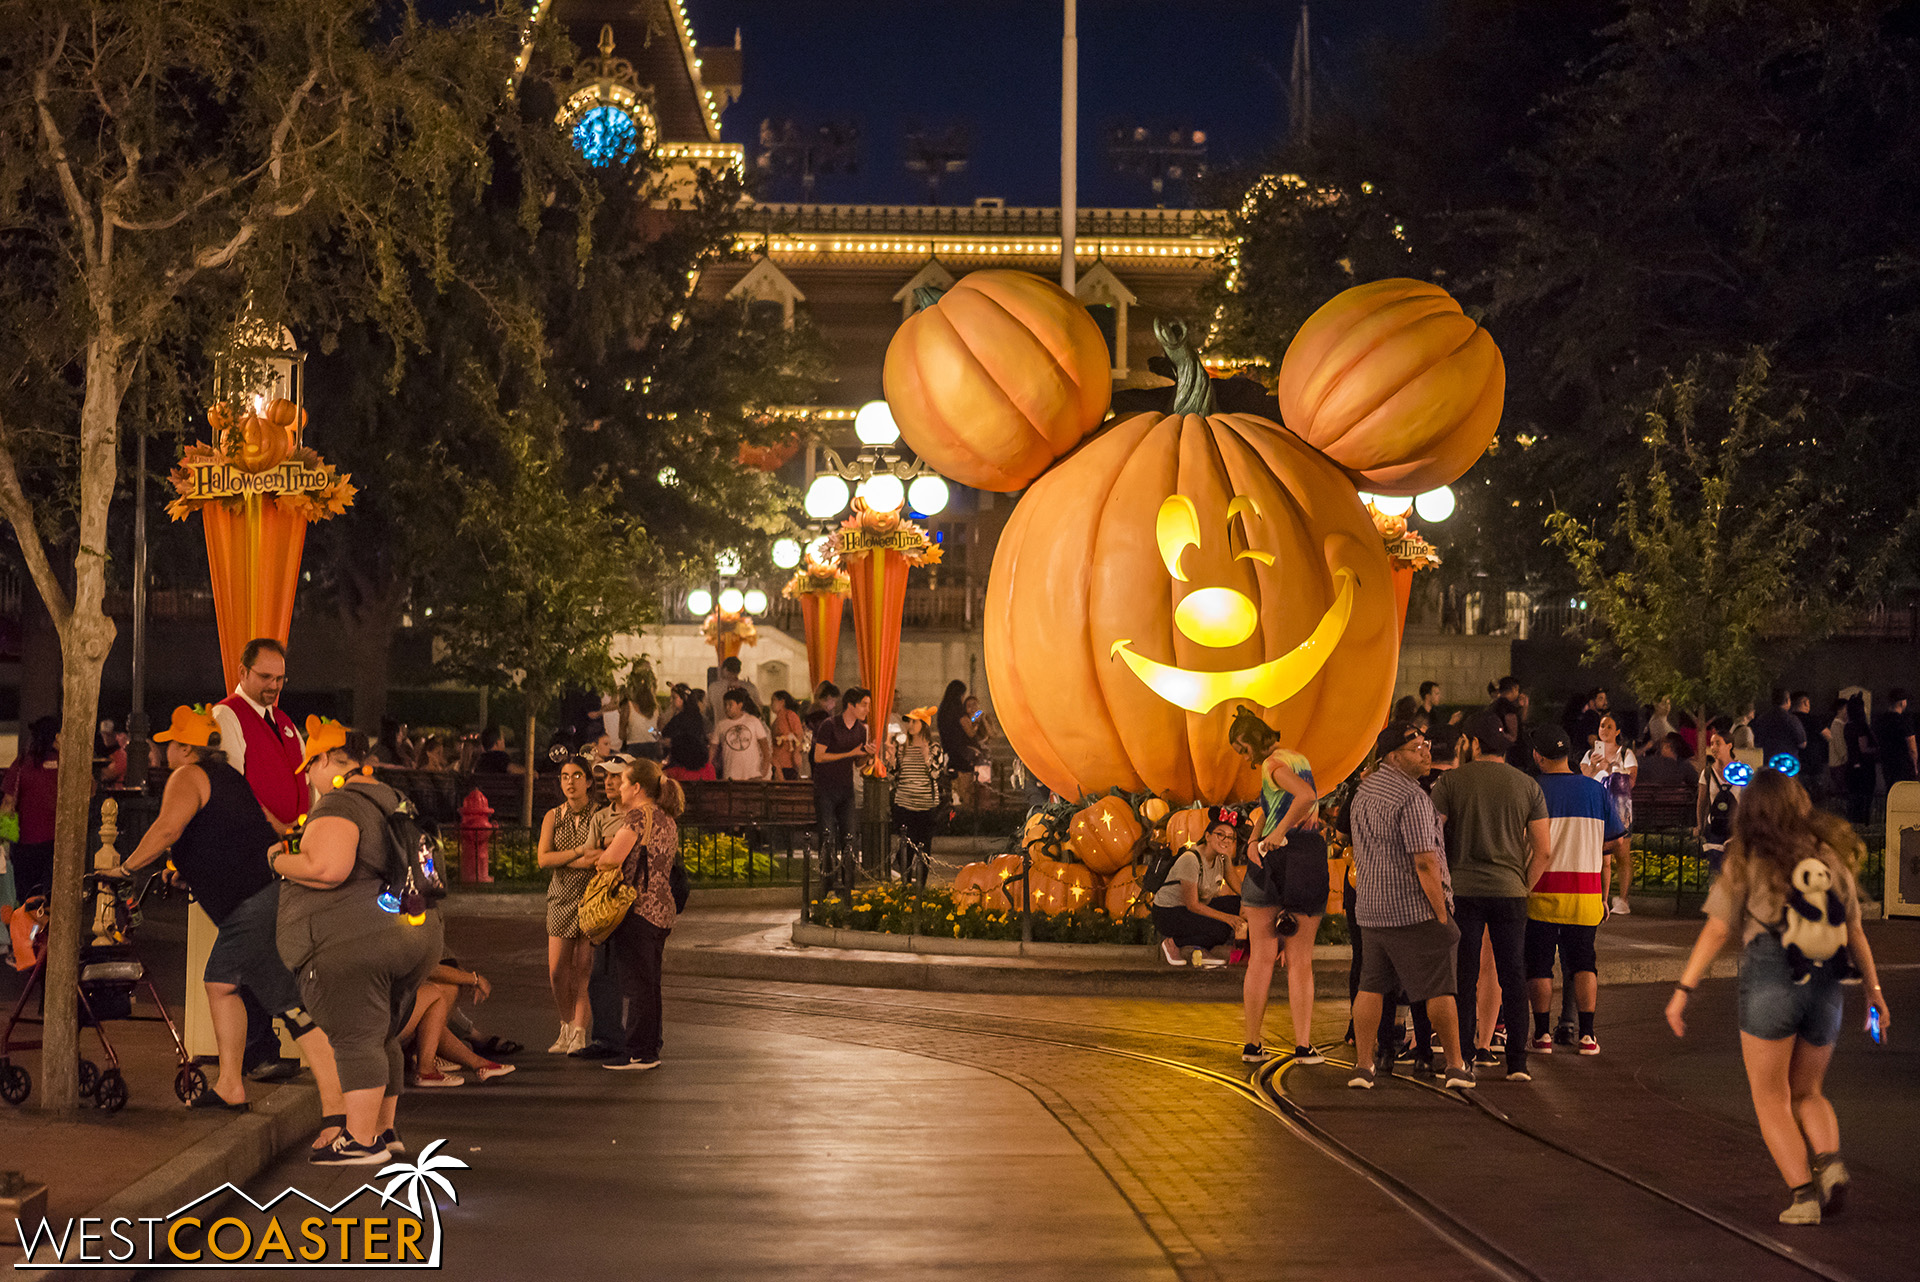 45 minutes after park closing, Main Street was still somewhat crowded.